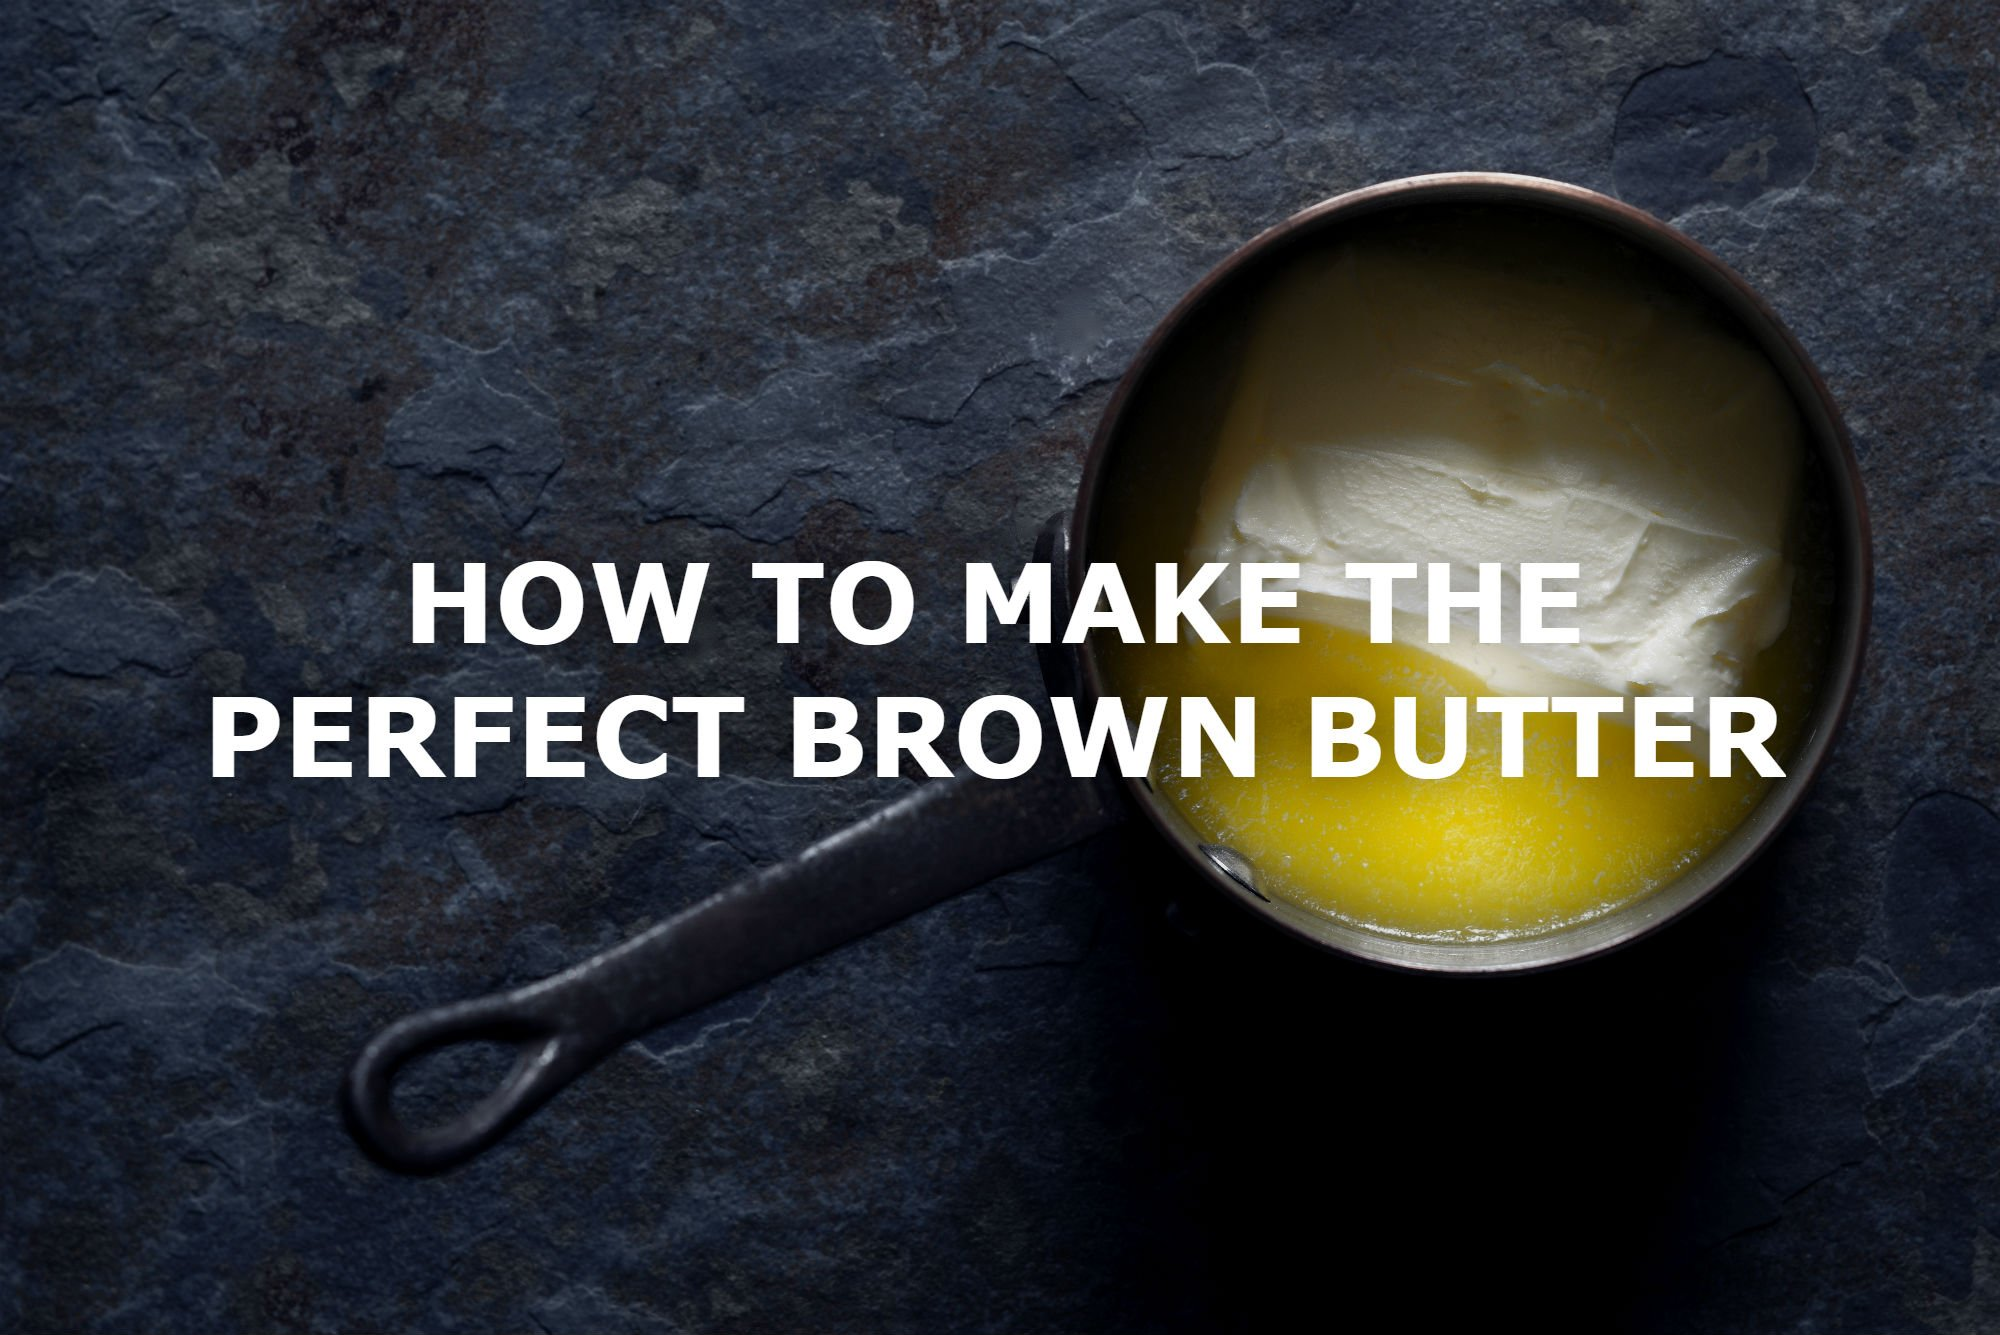 HOW TO MAKE THE PERFECT BROWN BUTTER